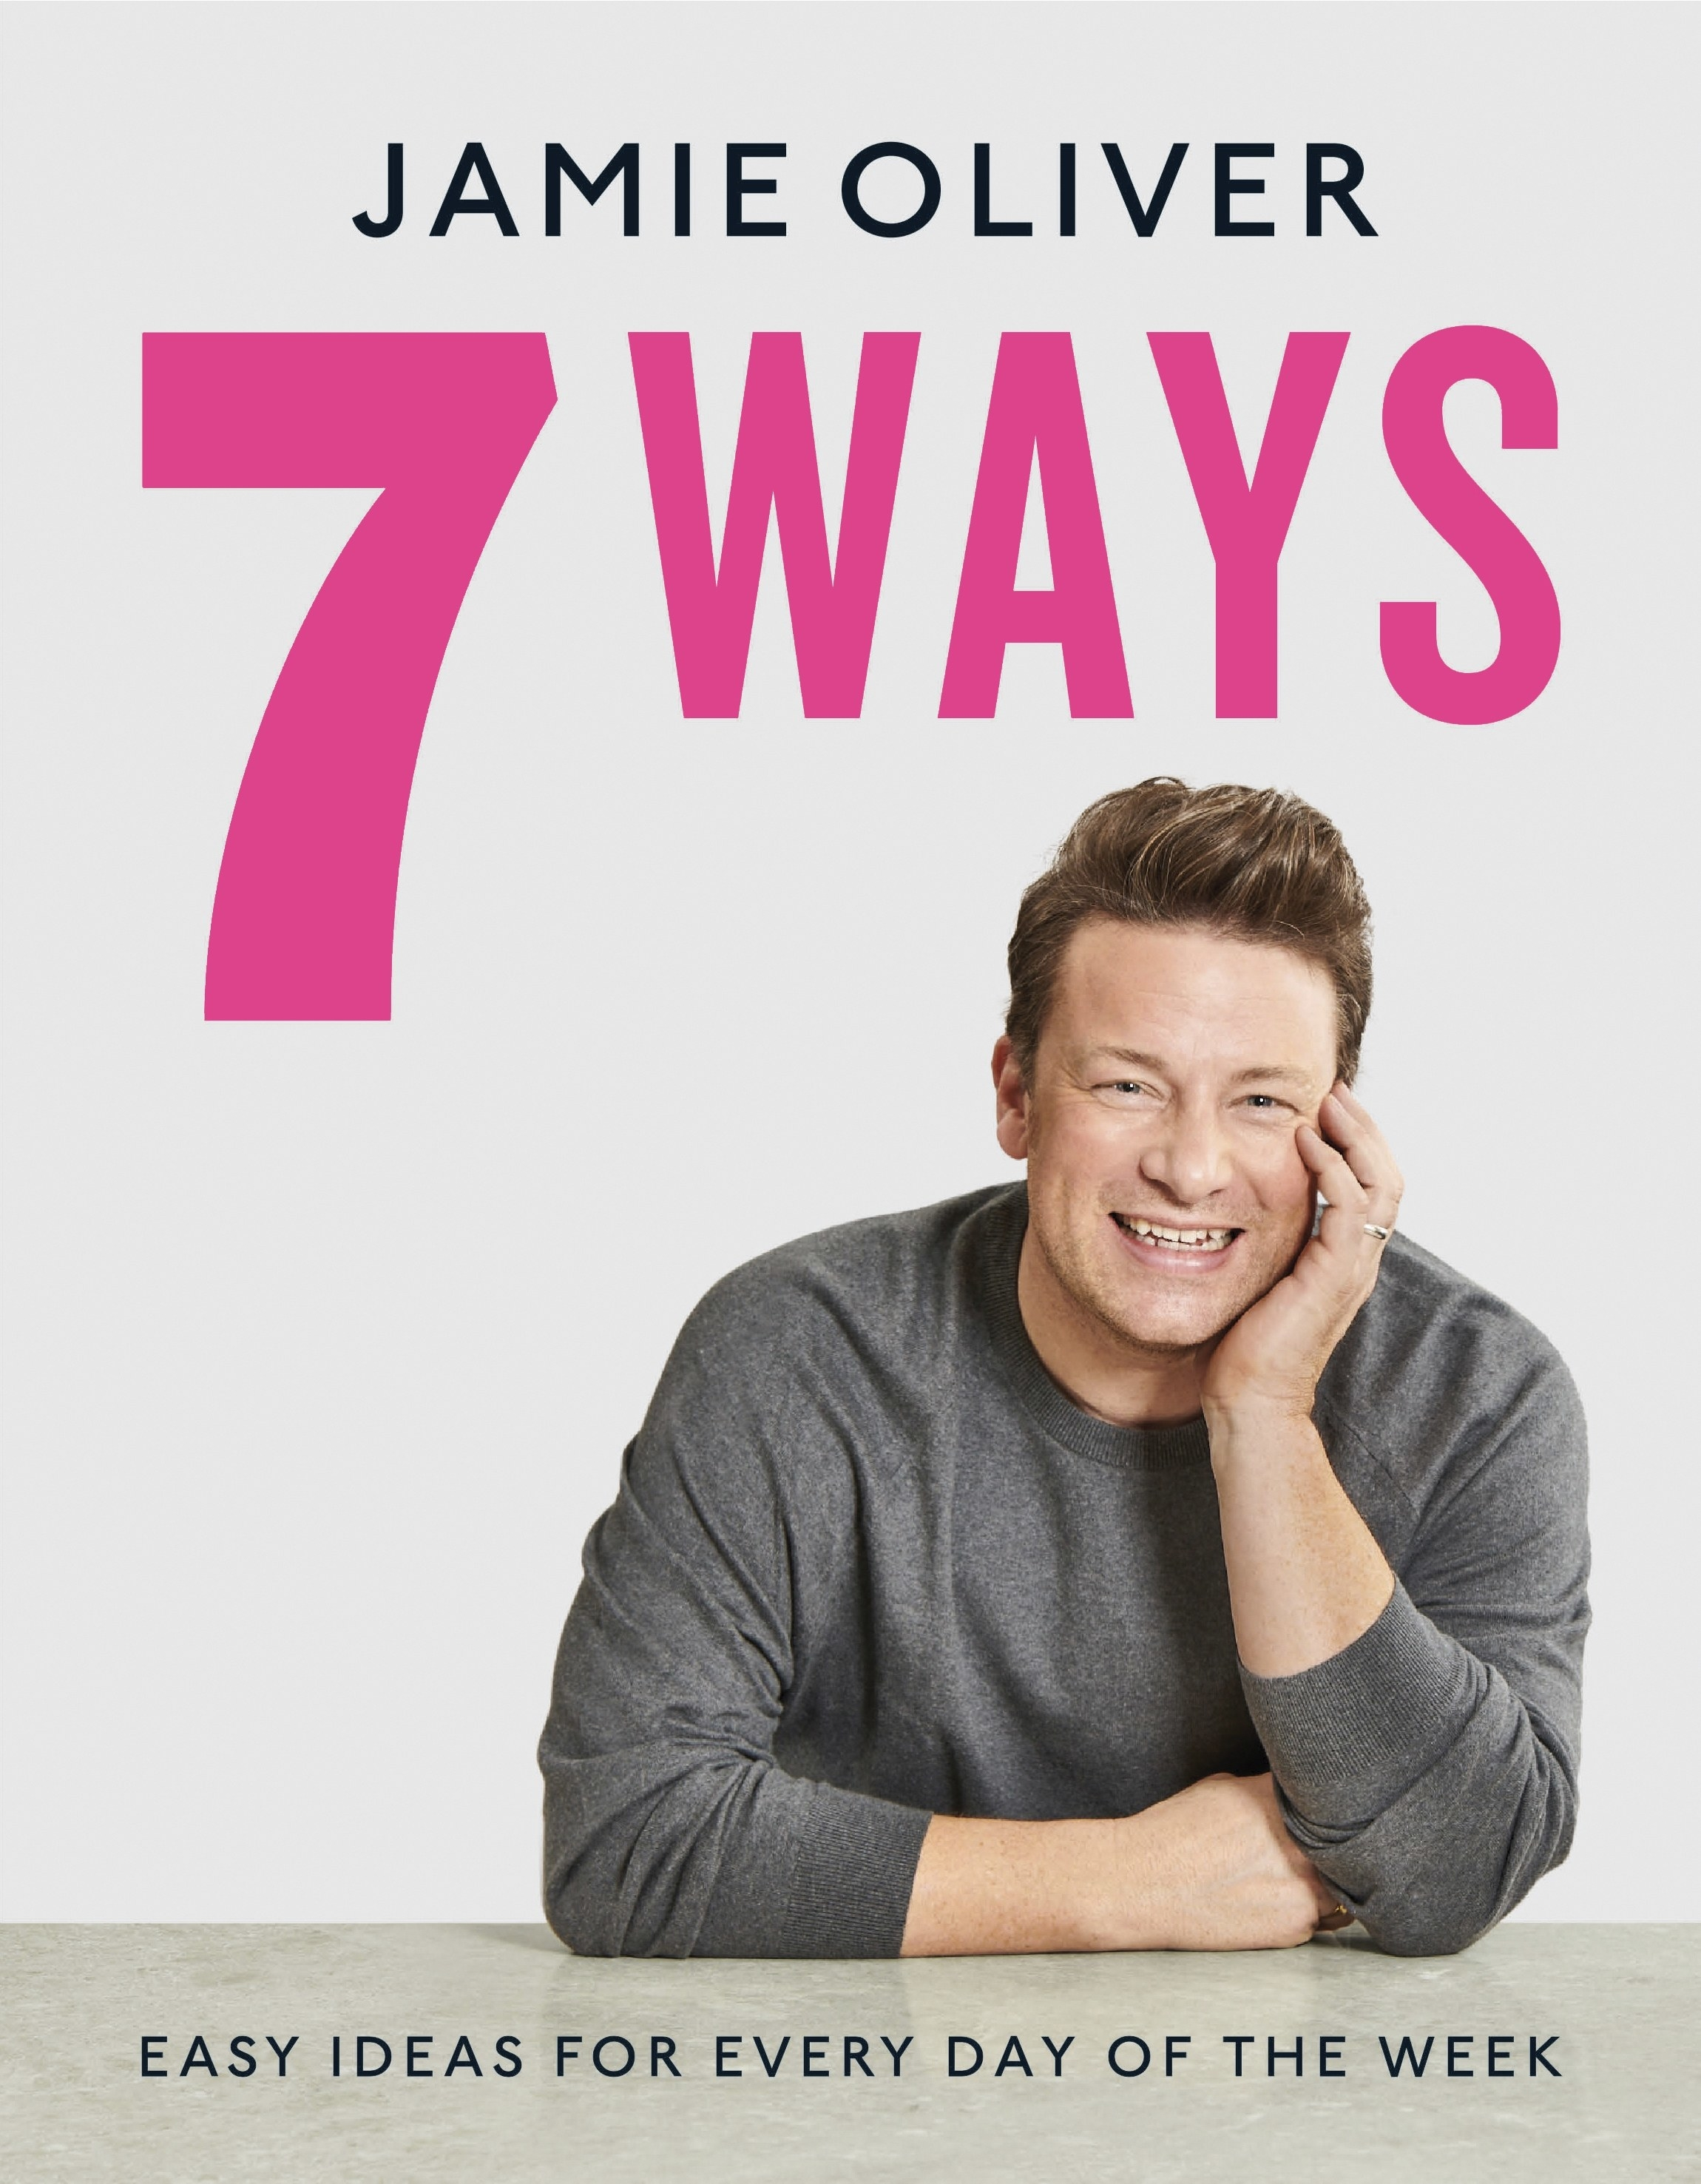 The cover of 7 Ways by Jamie Oliver